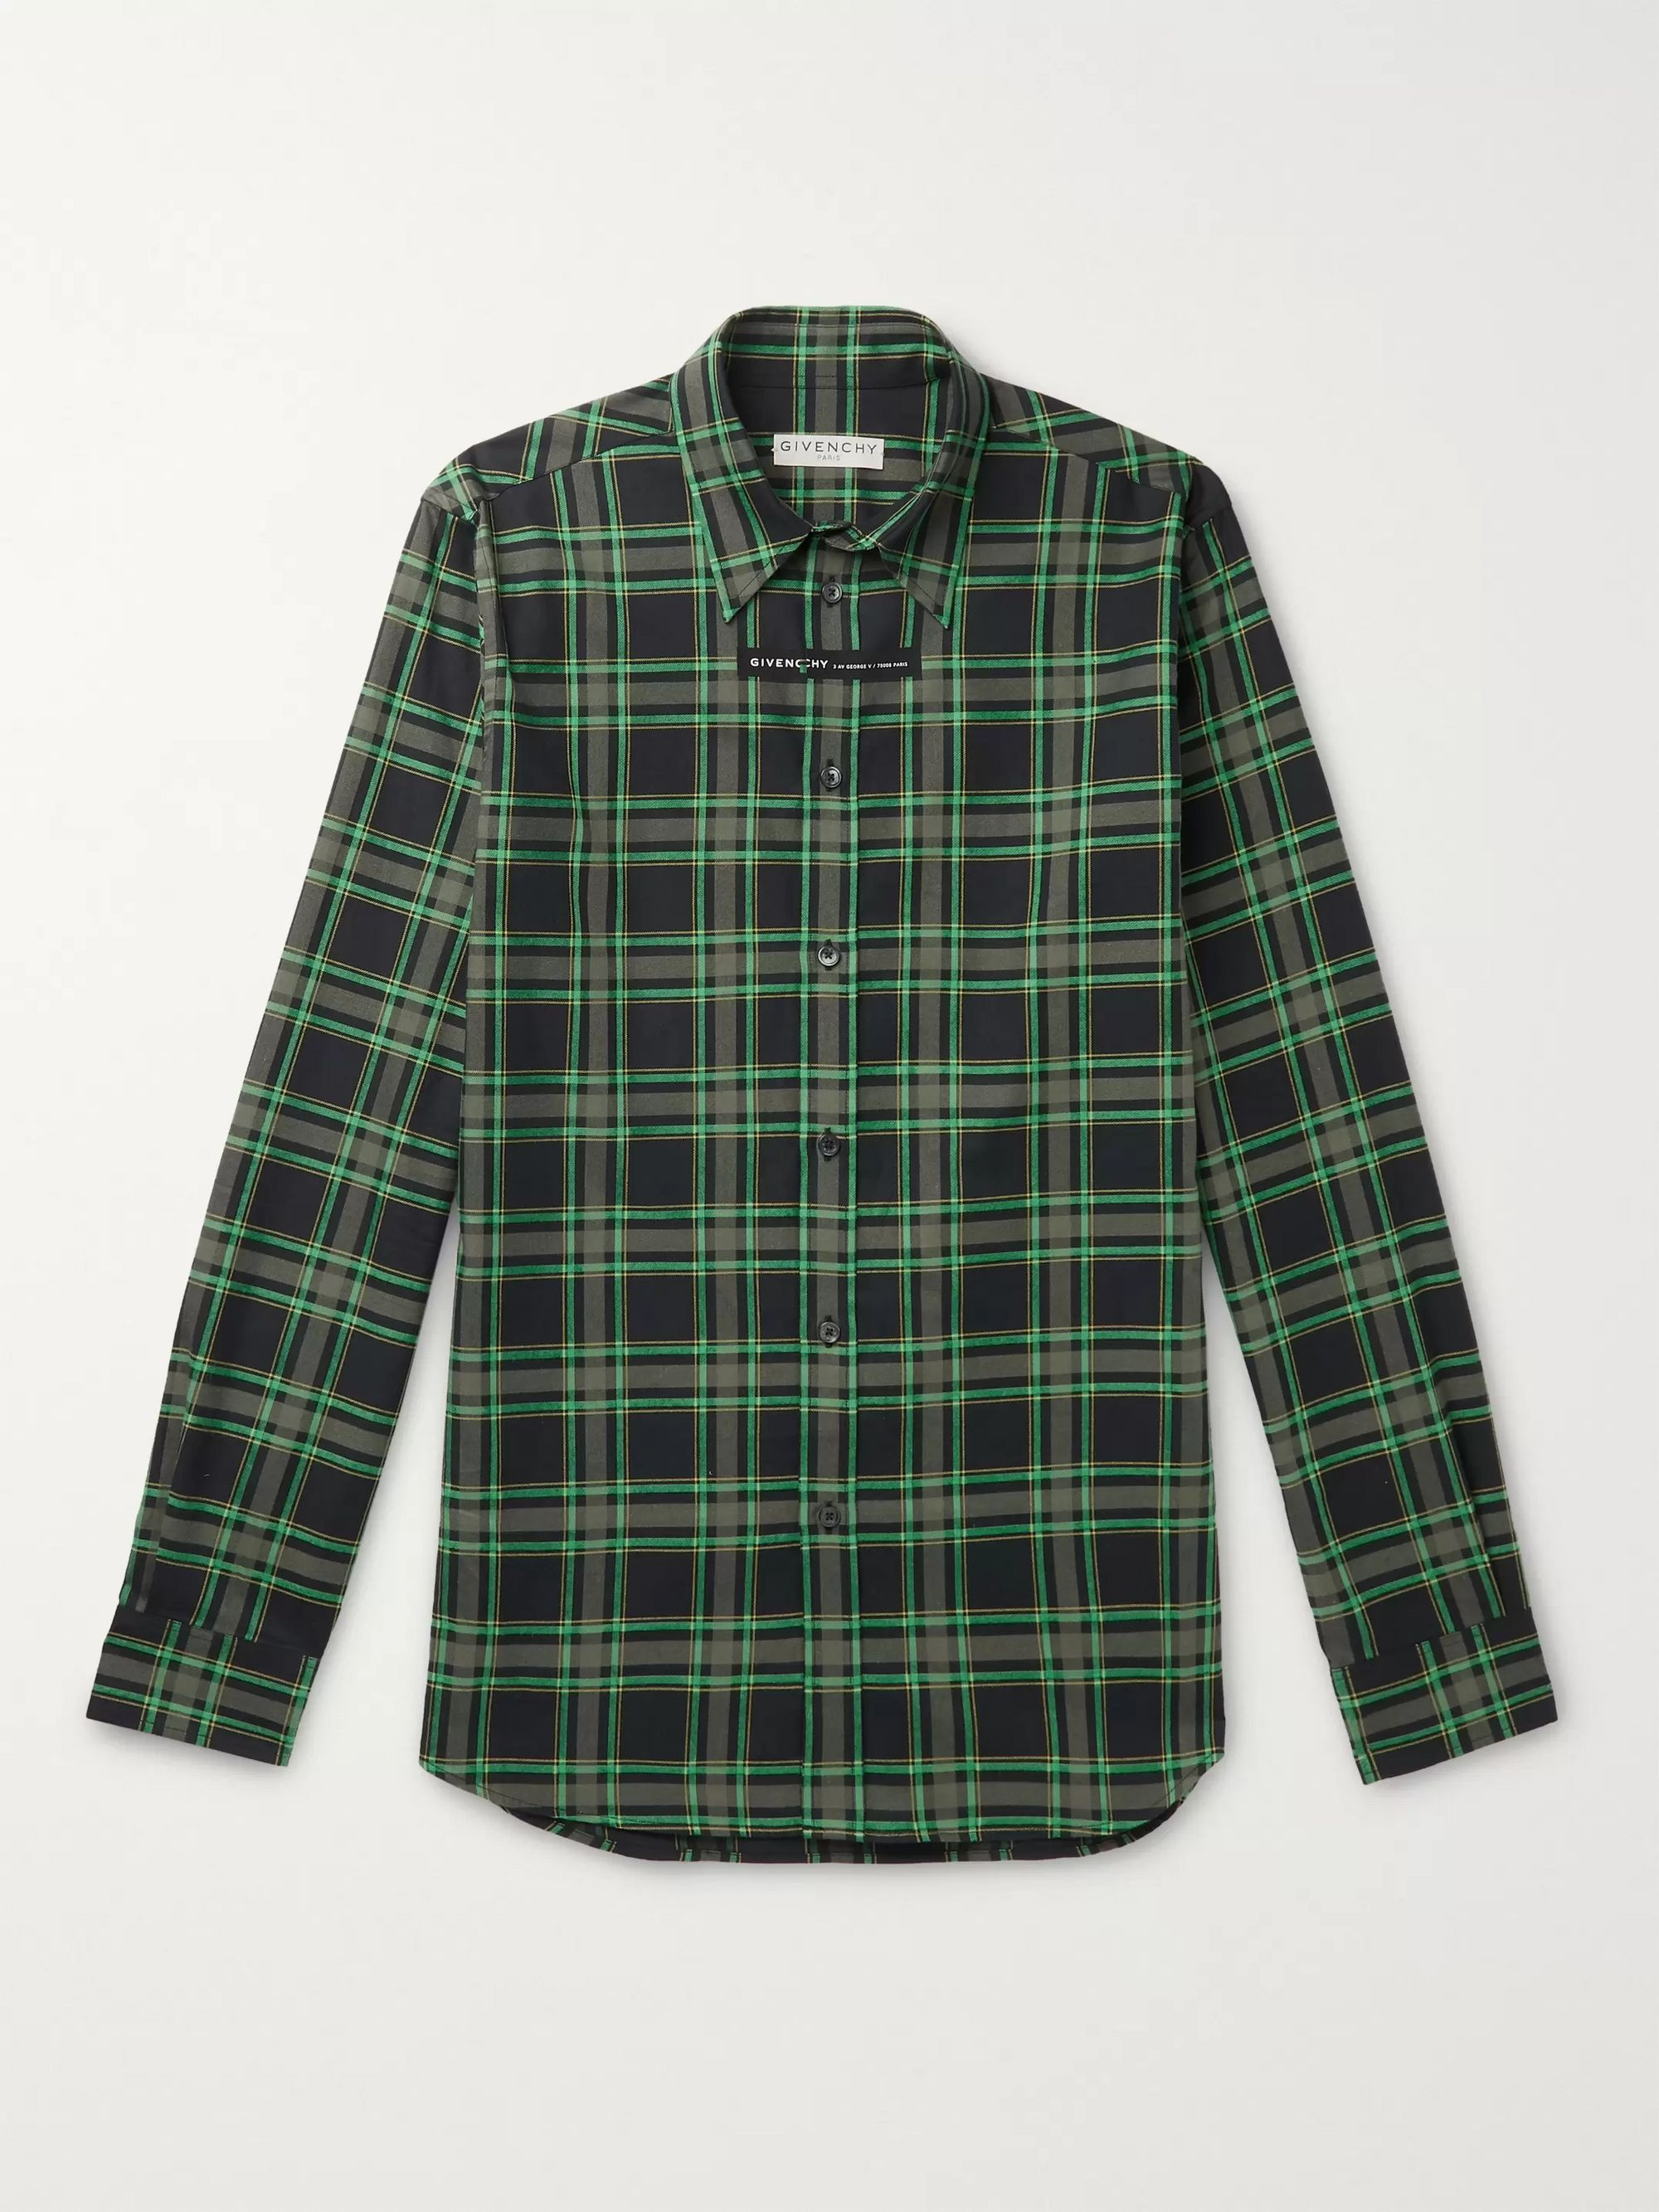 Givenchy Slim-Fit Checked Cotton-Flannel Shirt